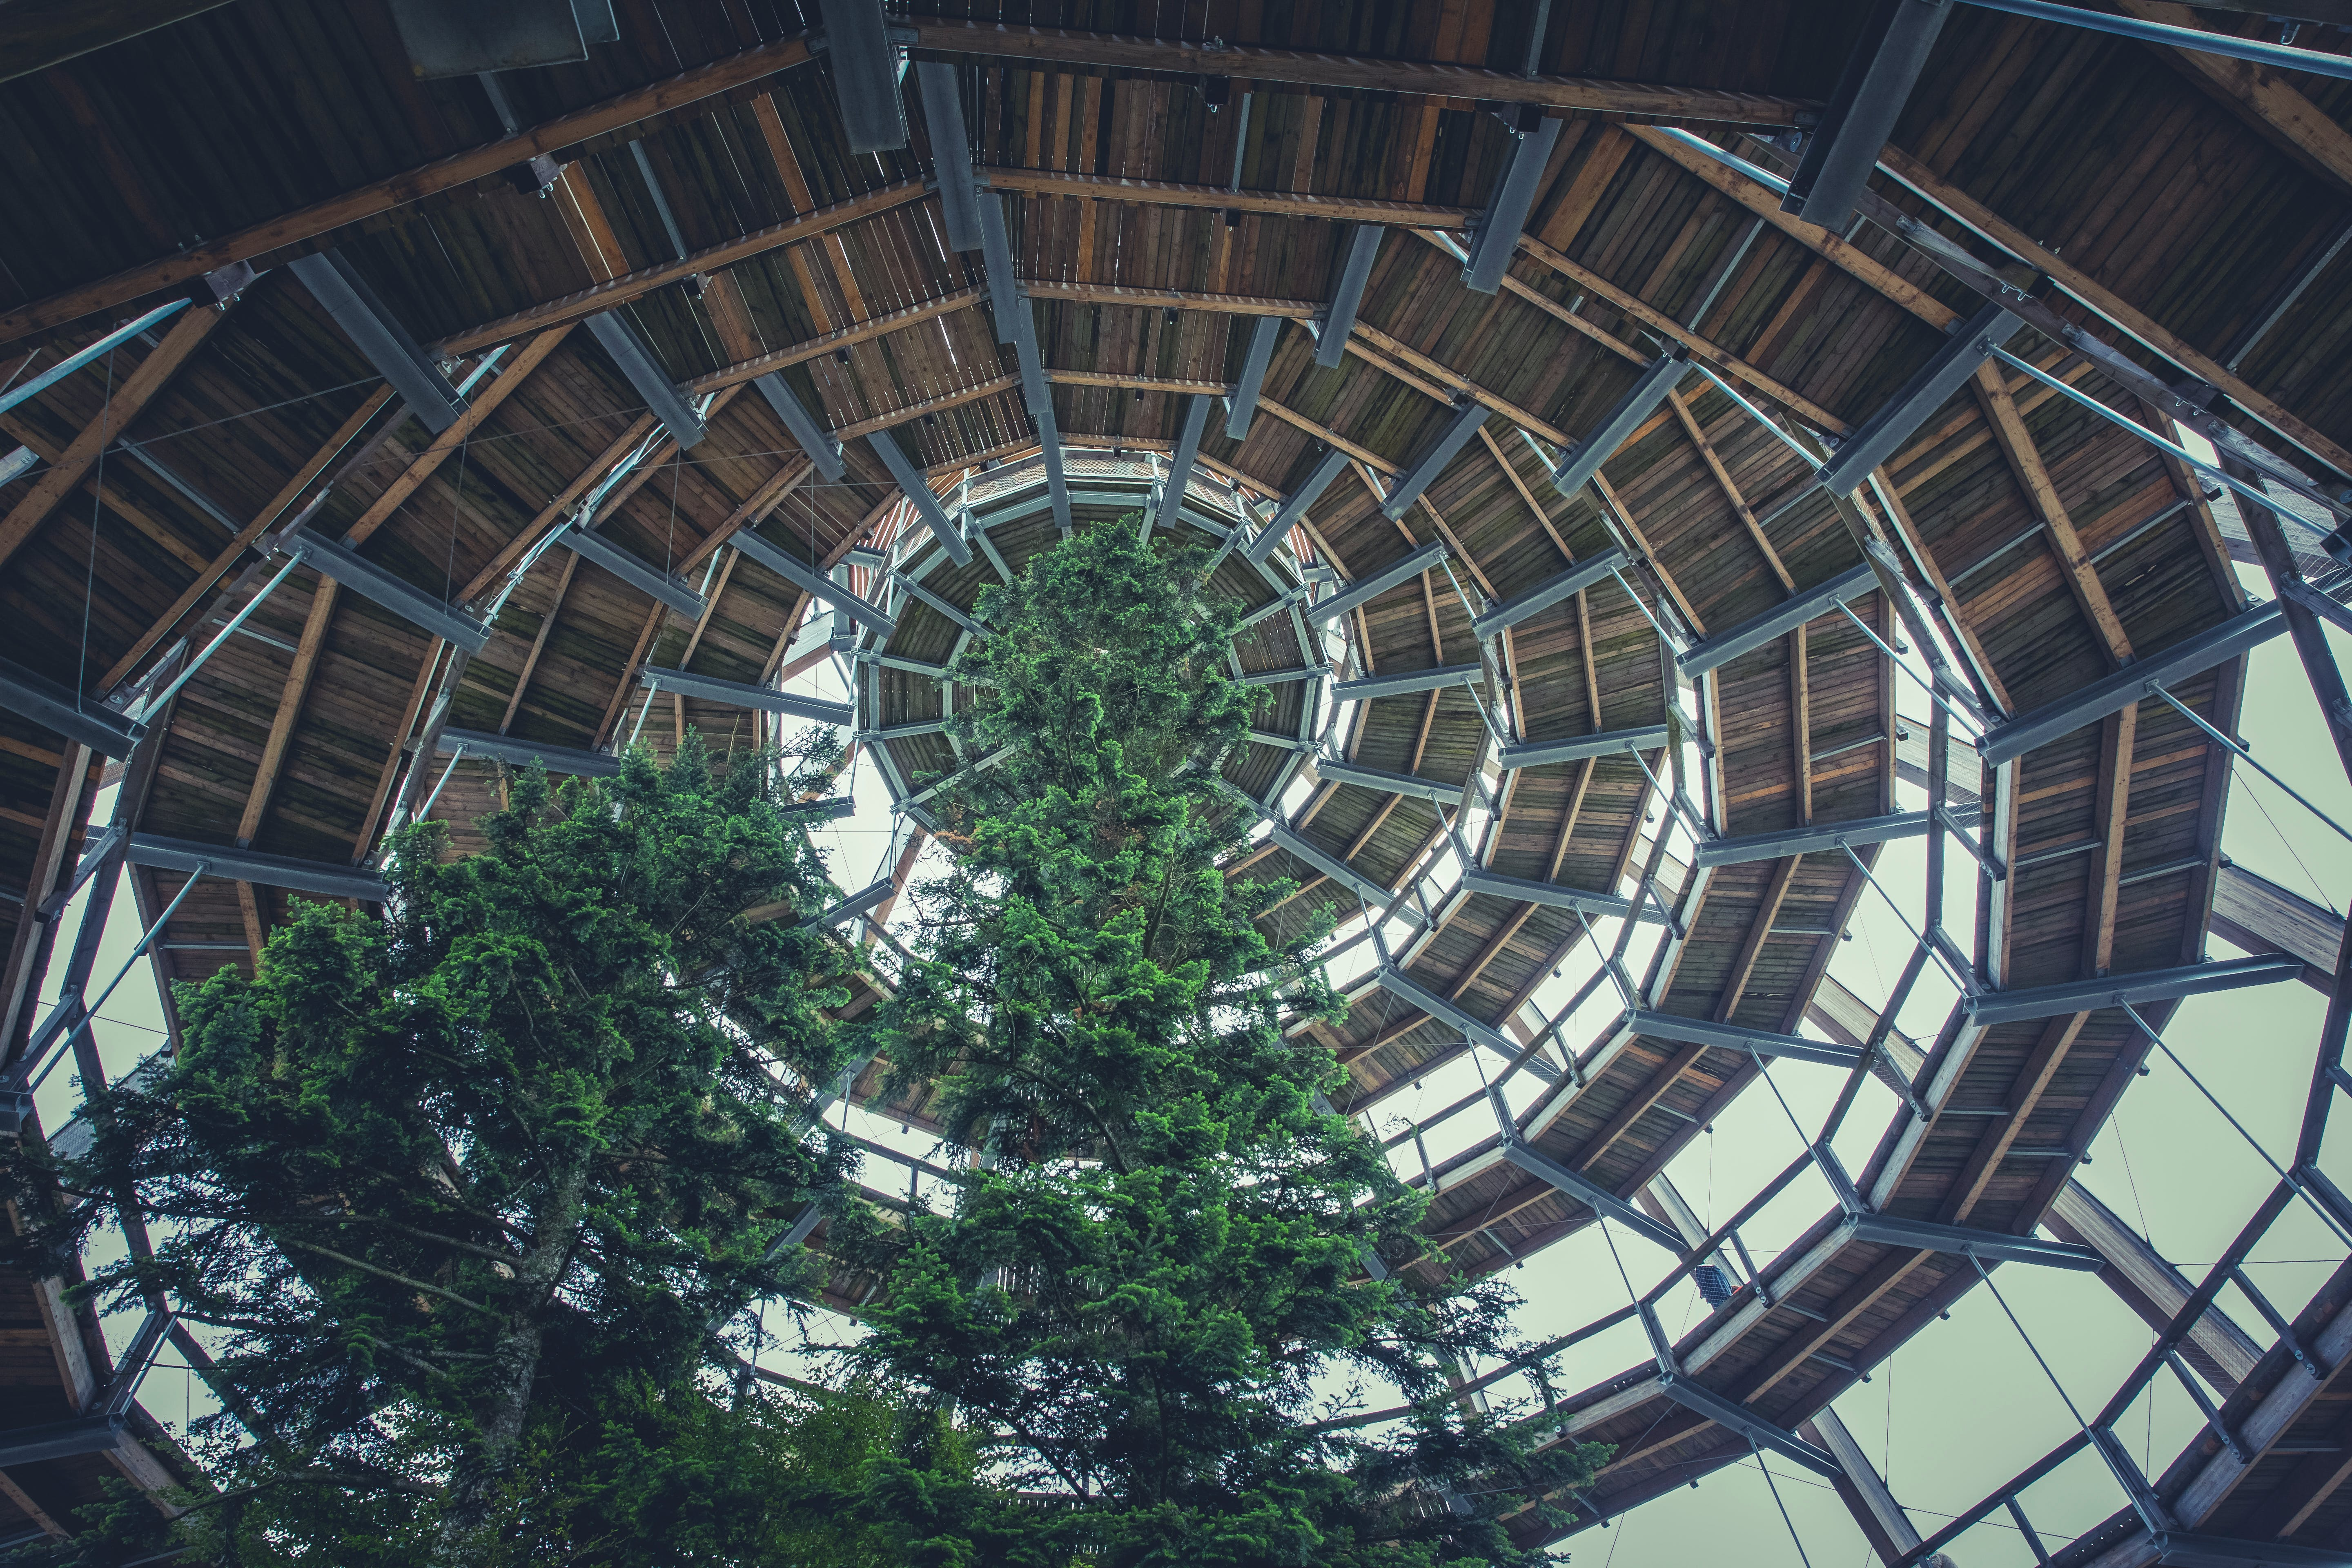 Brown Wooden Spiral Dome Building With Green Tree